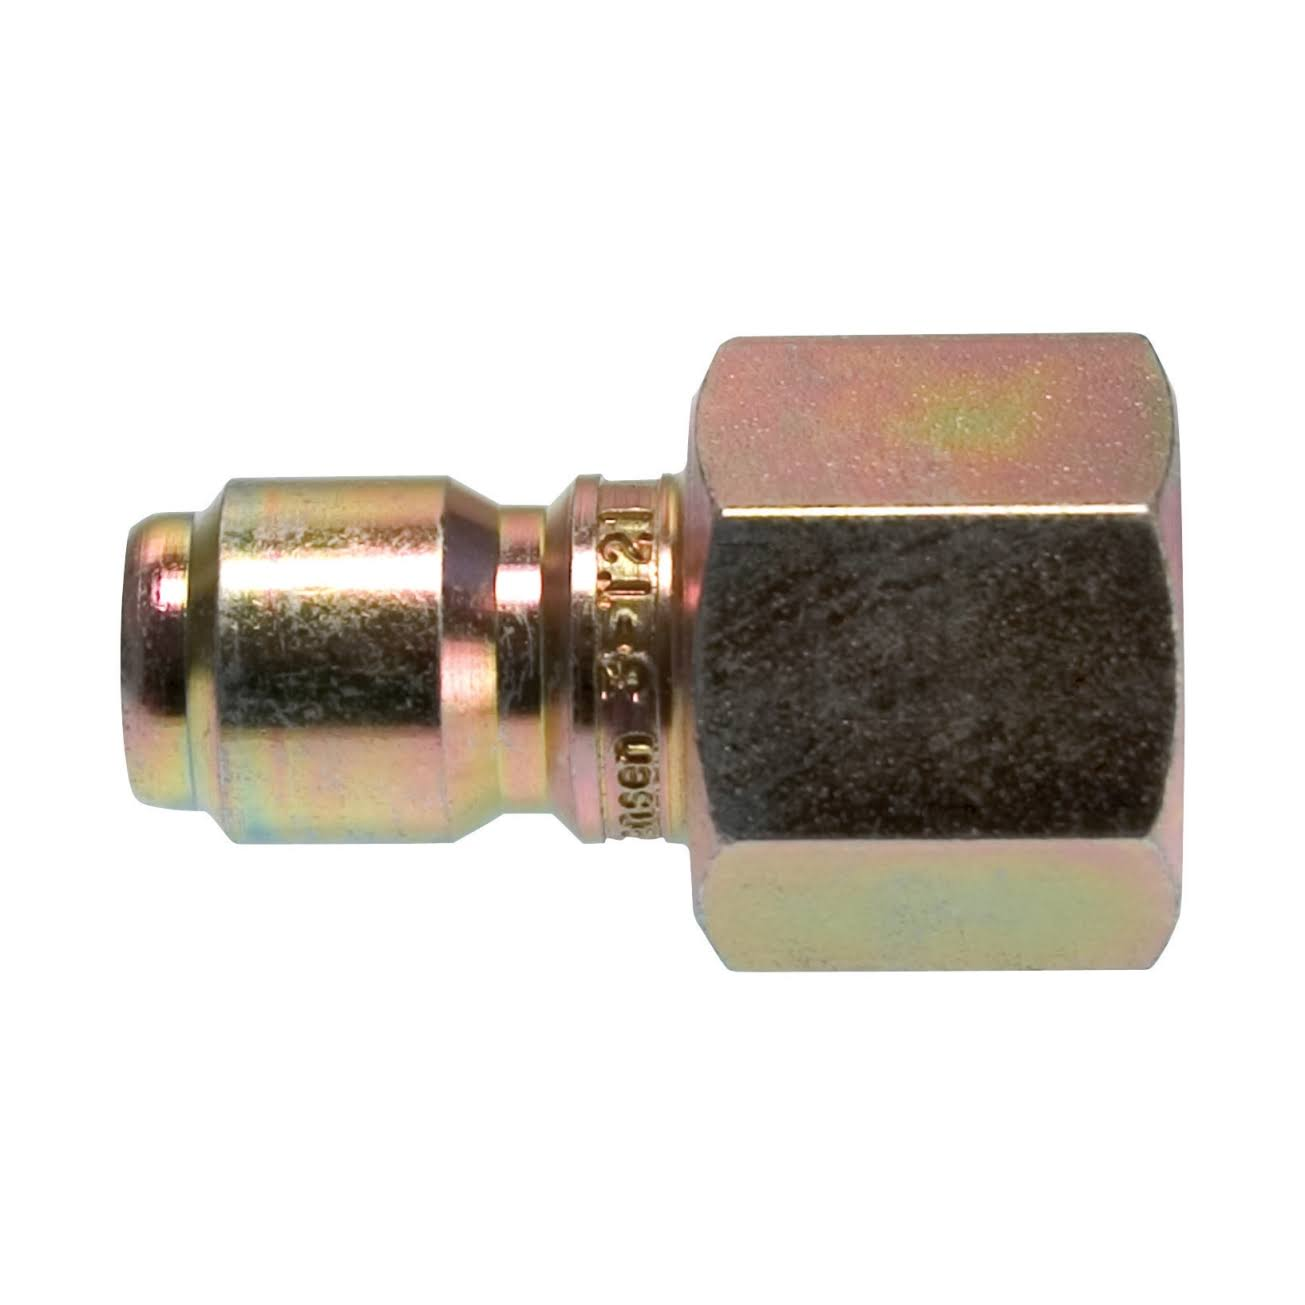 "Forney 75137 Pressure Washer Accessories Quick Coupler Plug - 3/8"" Female"